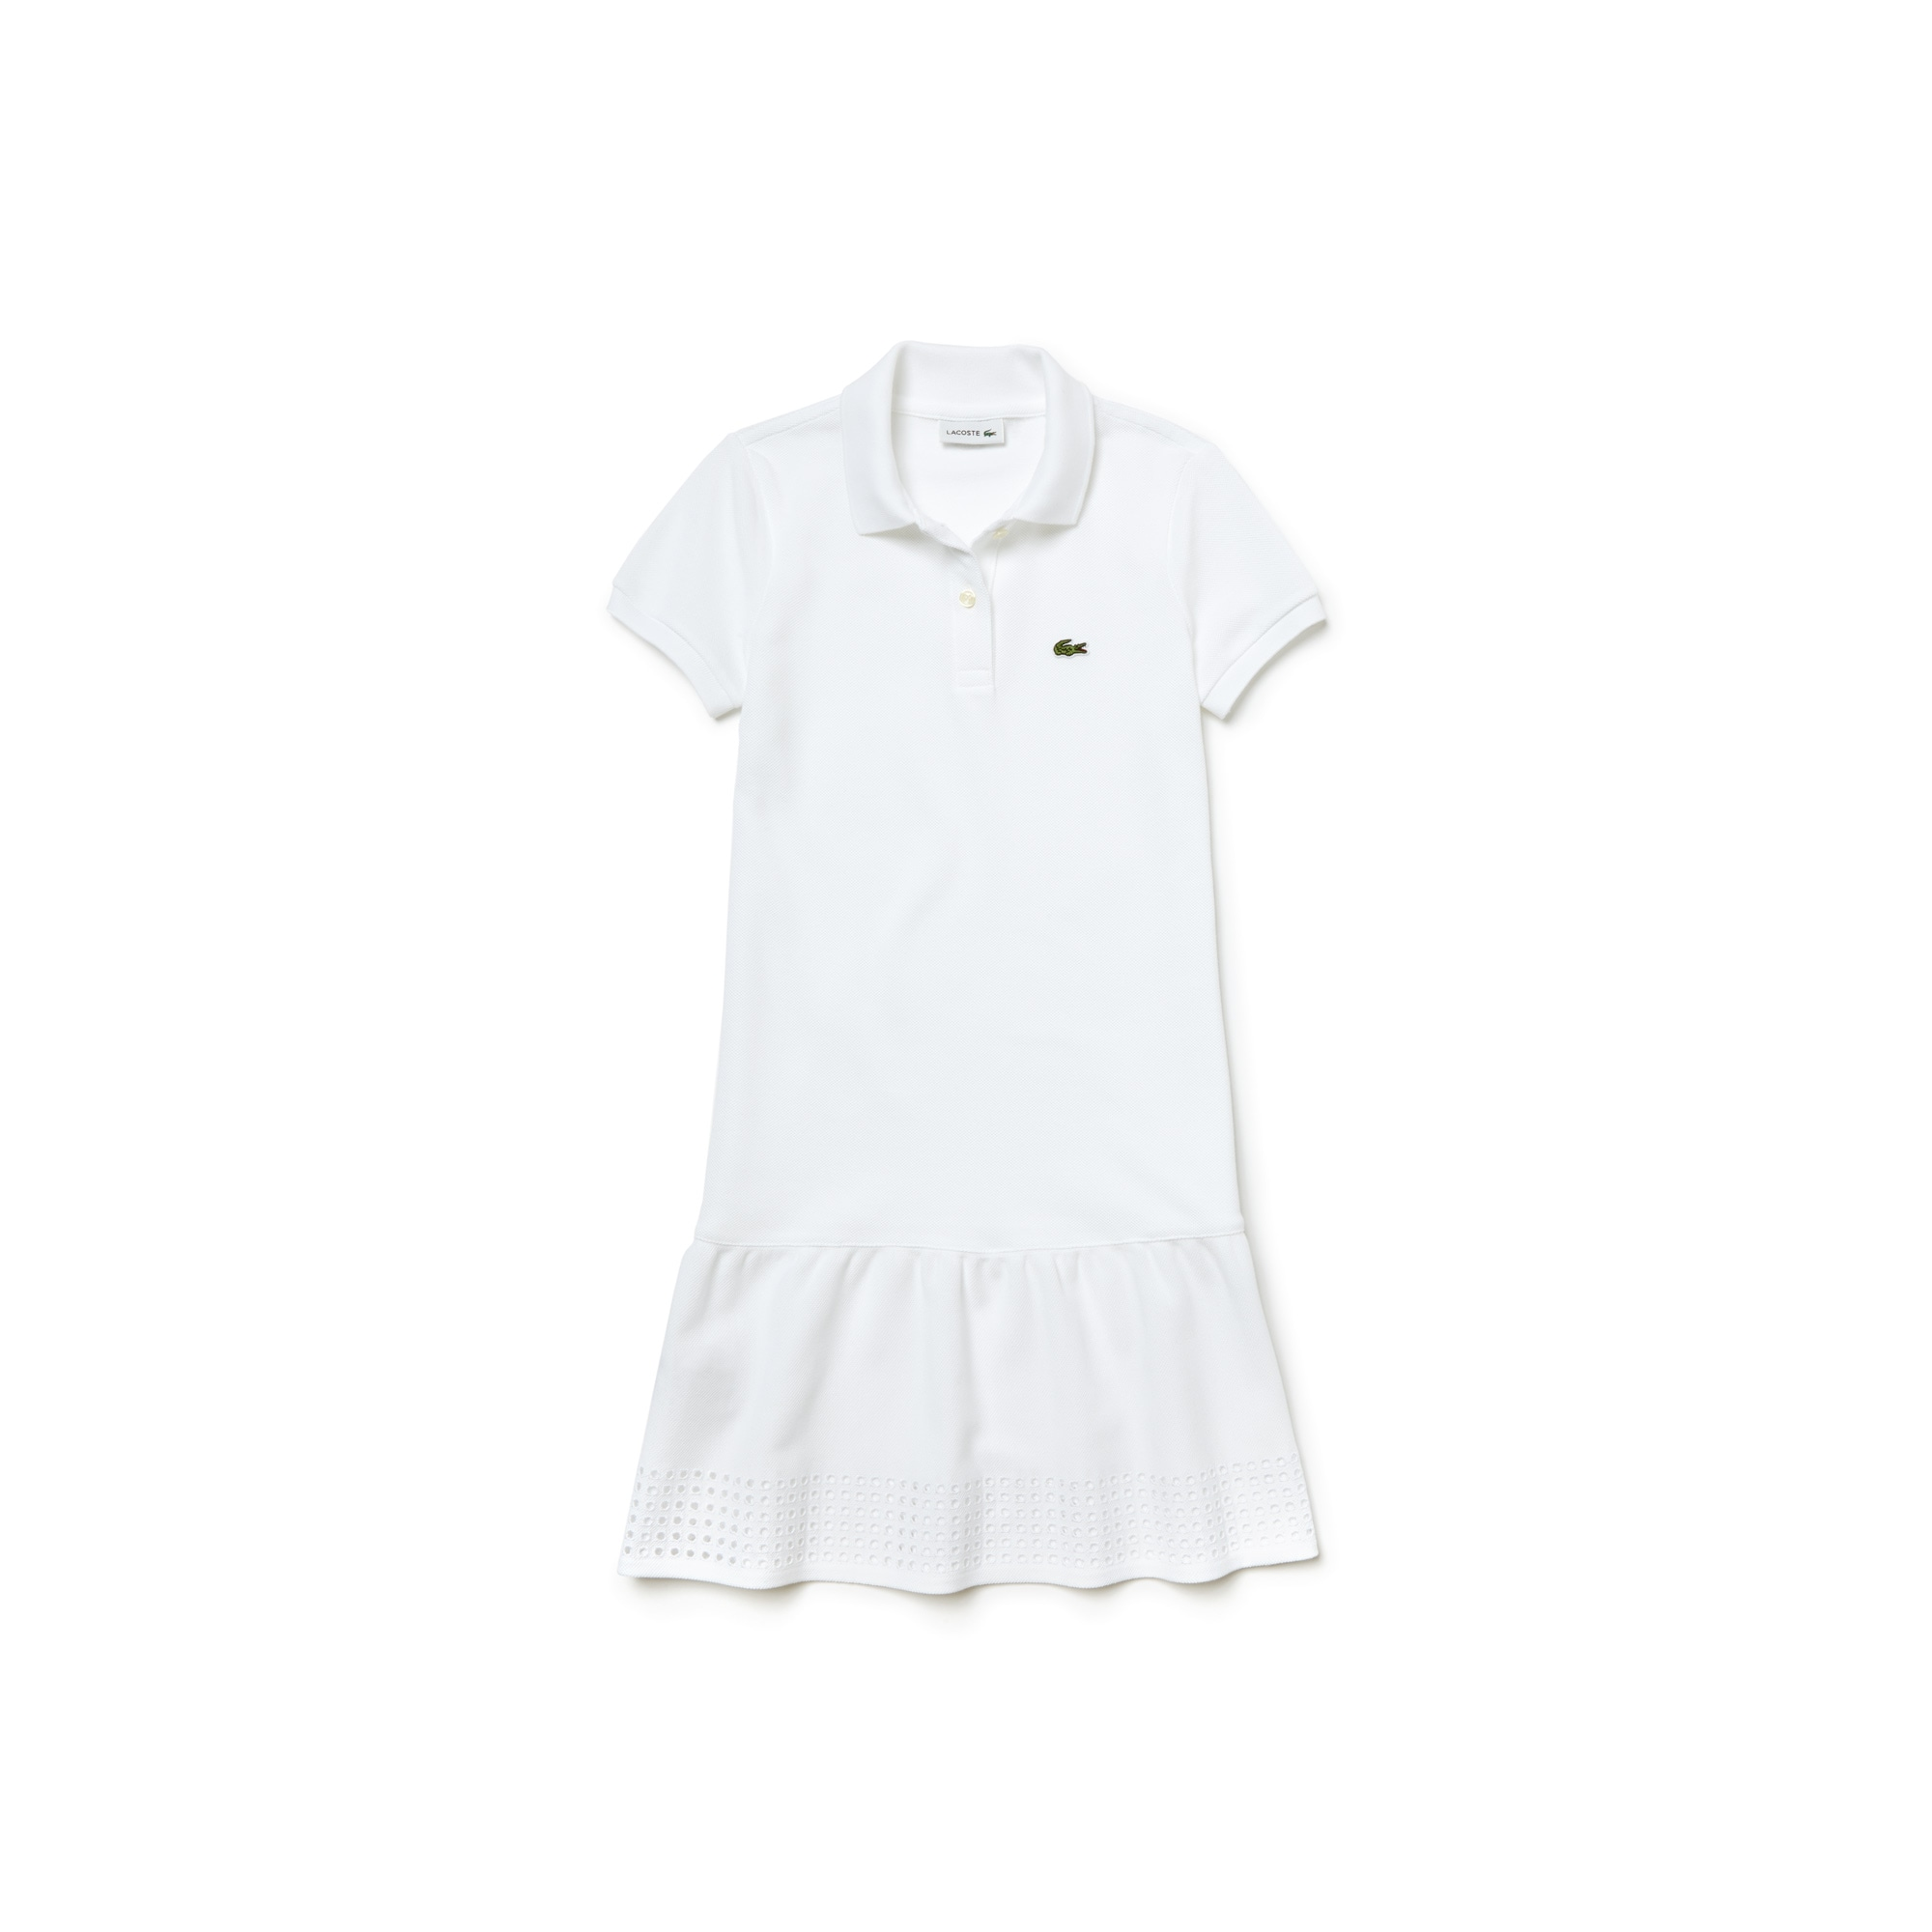 Kid's Openwork Piqué Knit Polo Dress